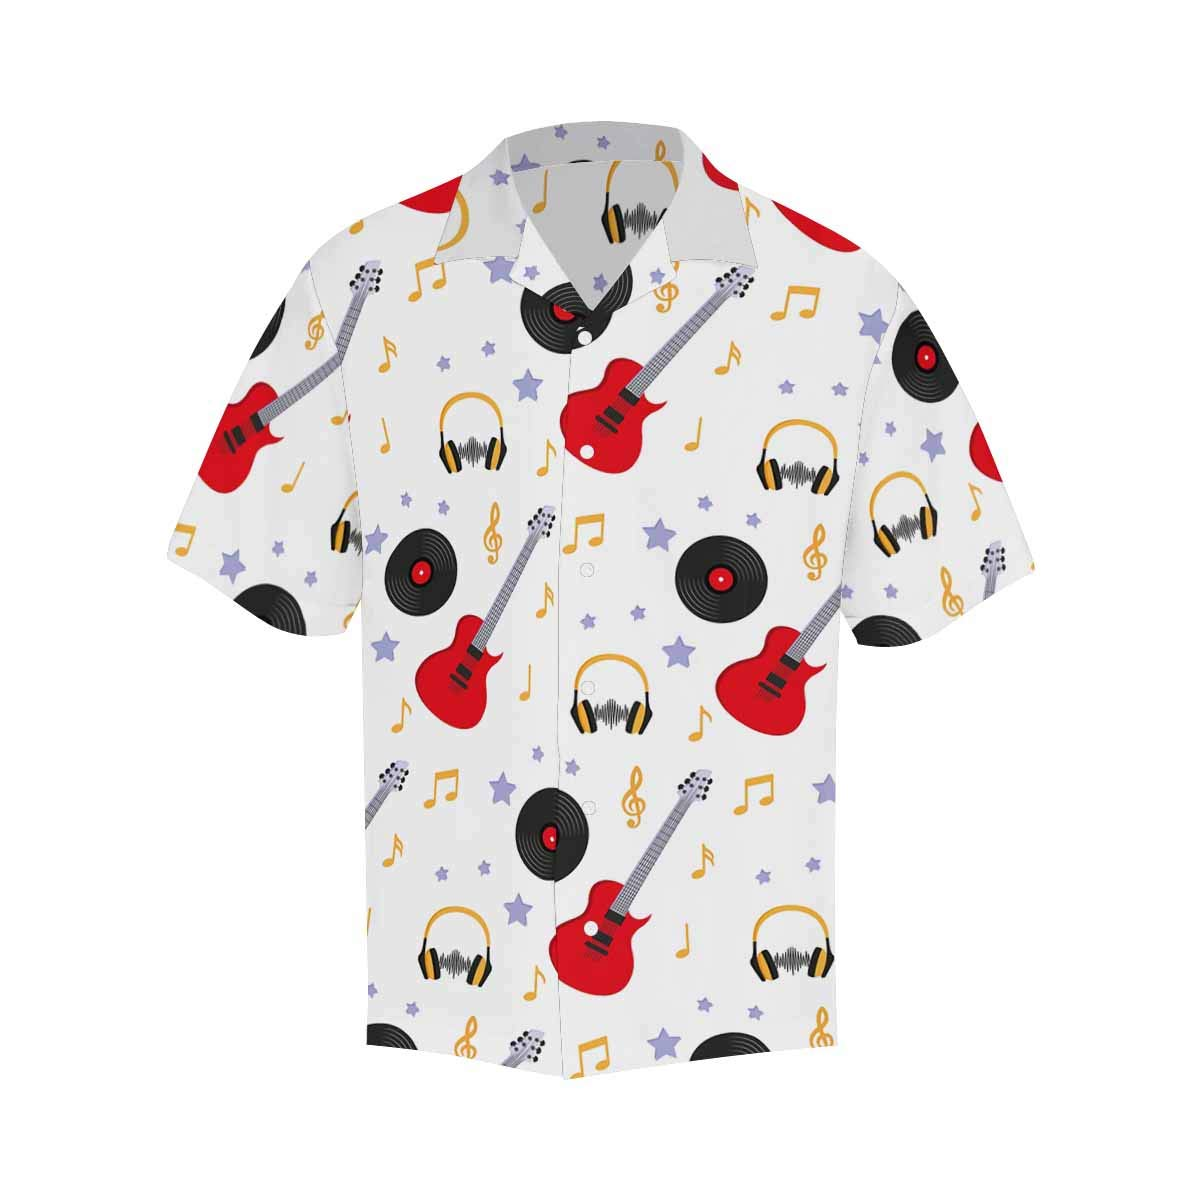 Comfortable and Breathable InterestPrint Moon Bird Feathers Flowers and Jewels Short-Sleeve Shirt